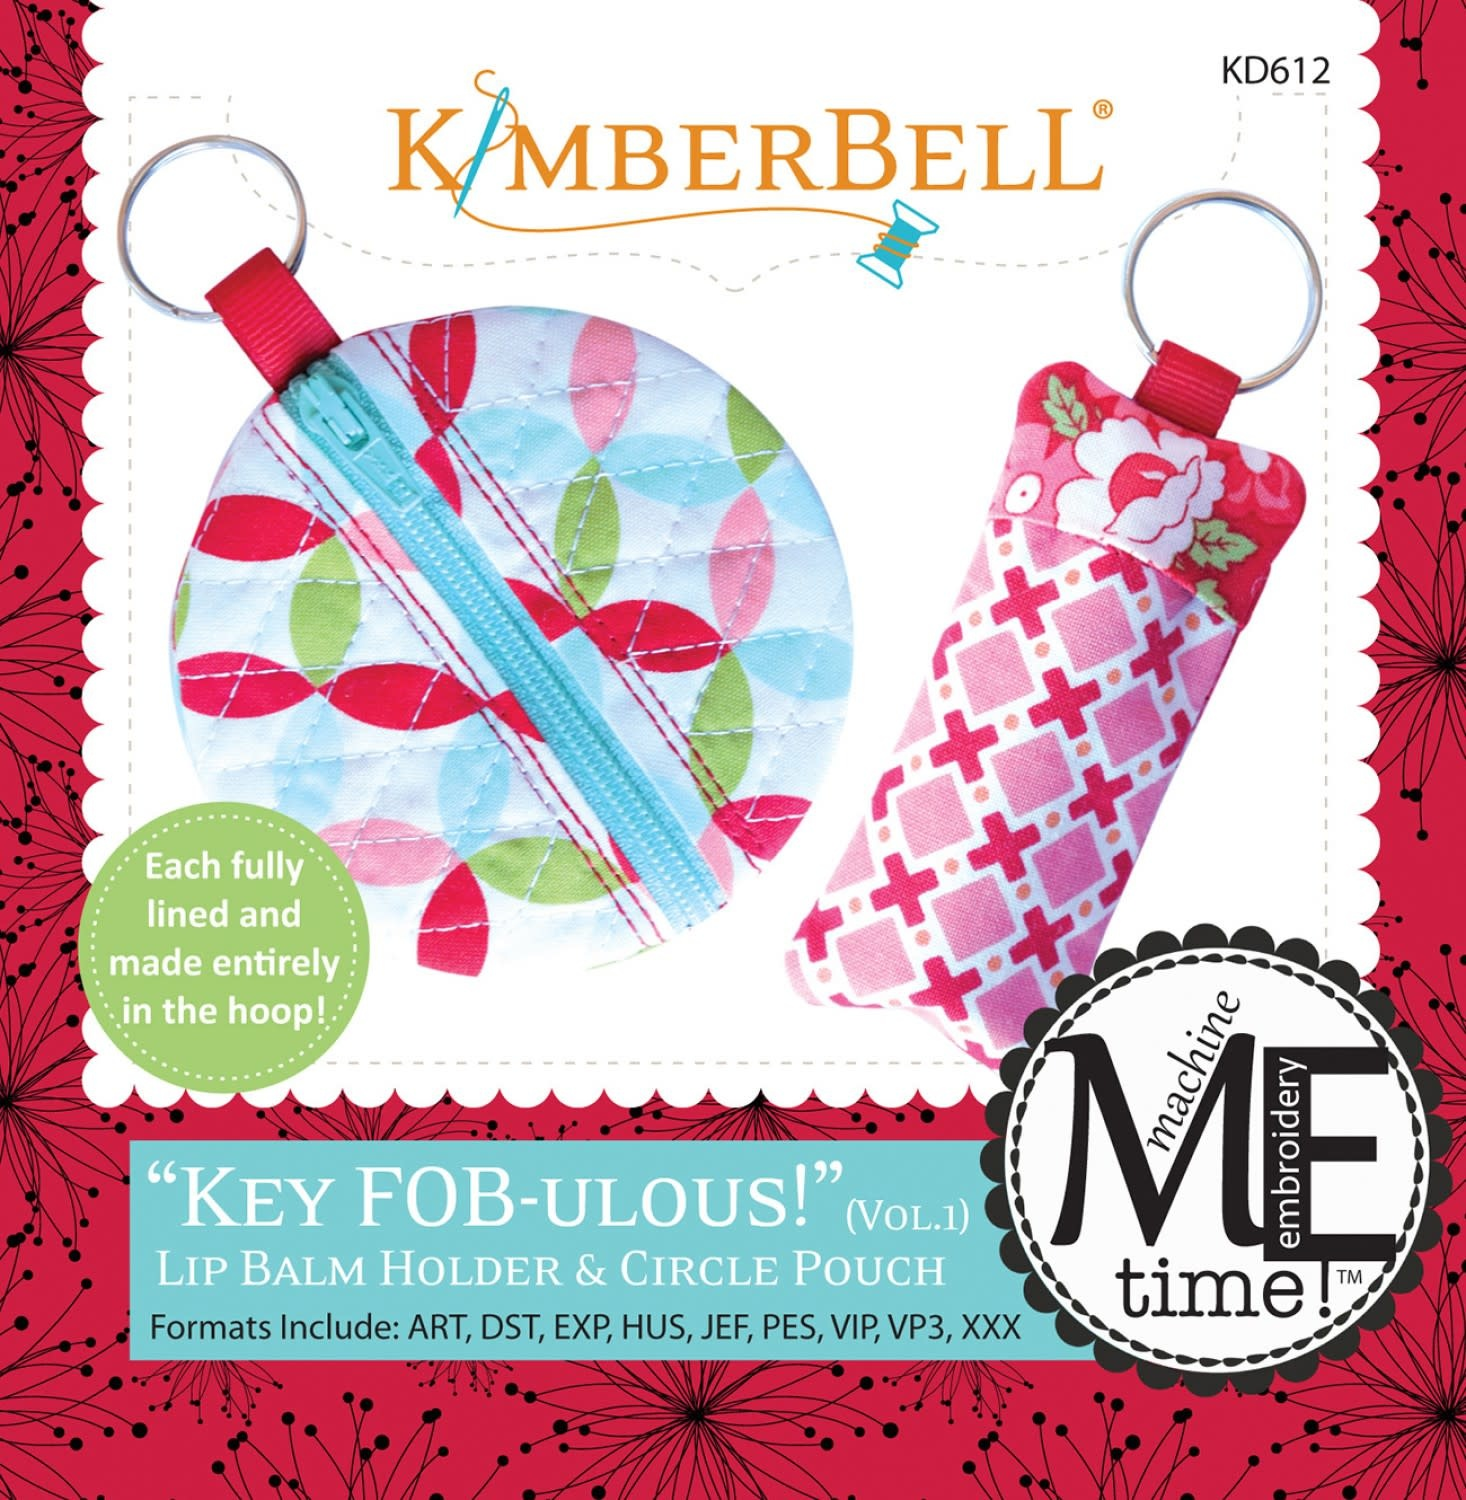 KIMBERBELL DESIGNS ME Time: Key Fob-ulous: Lip Balm Holder and Circle Pouch Embroidery CD